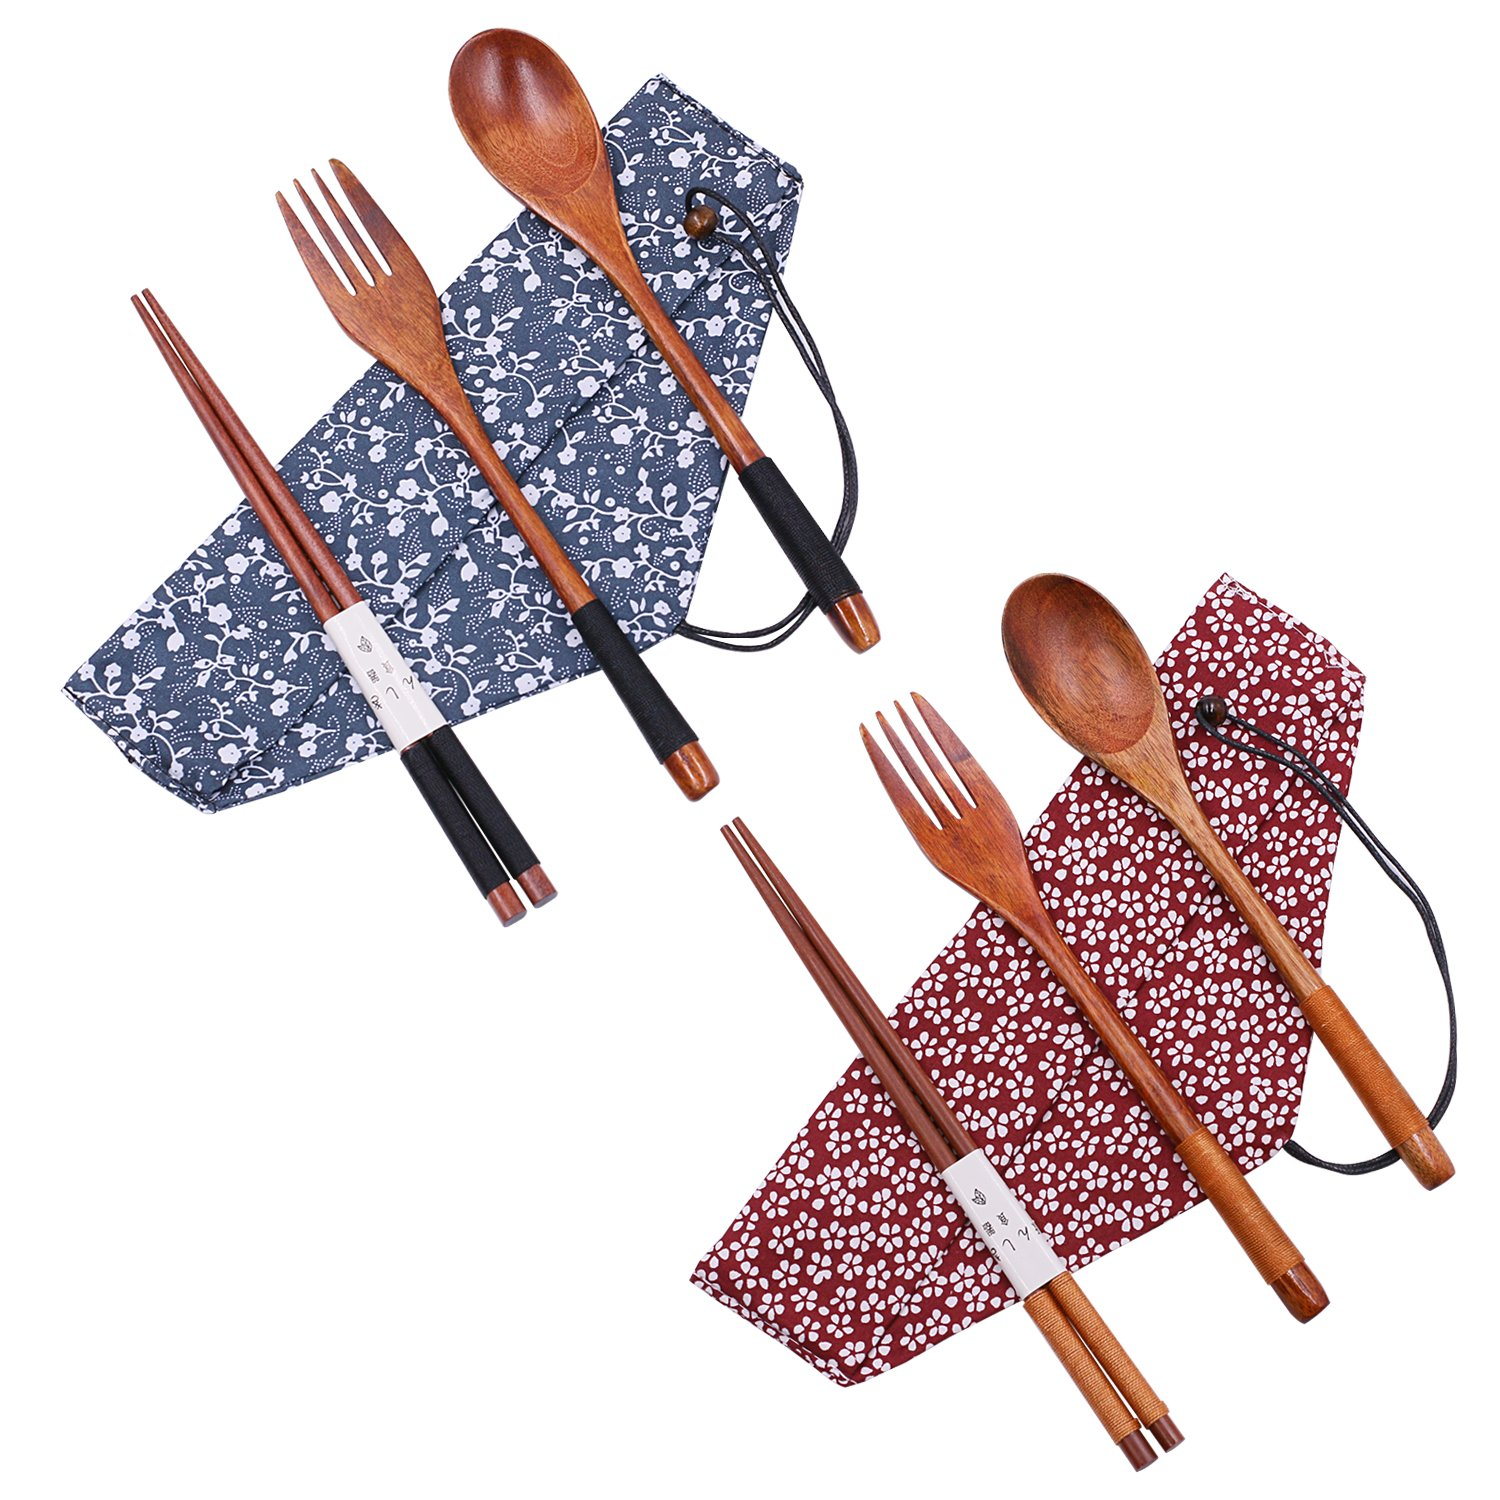 Startostar Wooden Flatware Set of 5-piece Tableware with Pouch for Camping, Travel, Picnic,Office or Home (Fork, Spoon, Chopsticks)